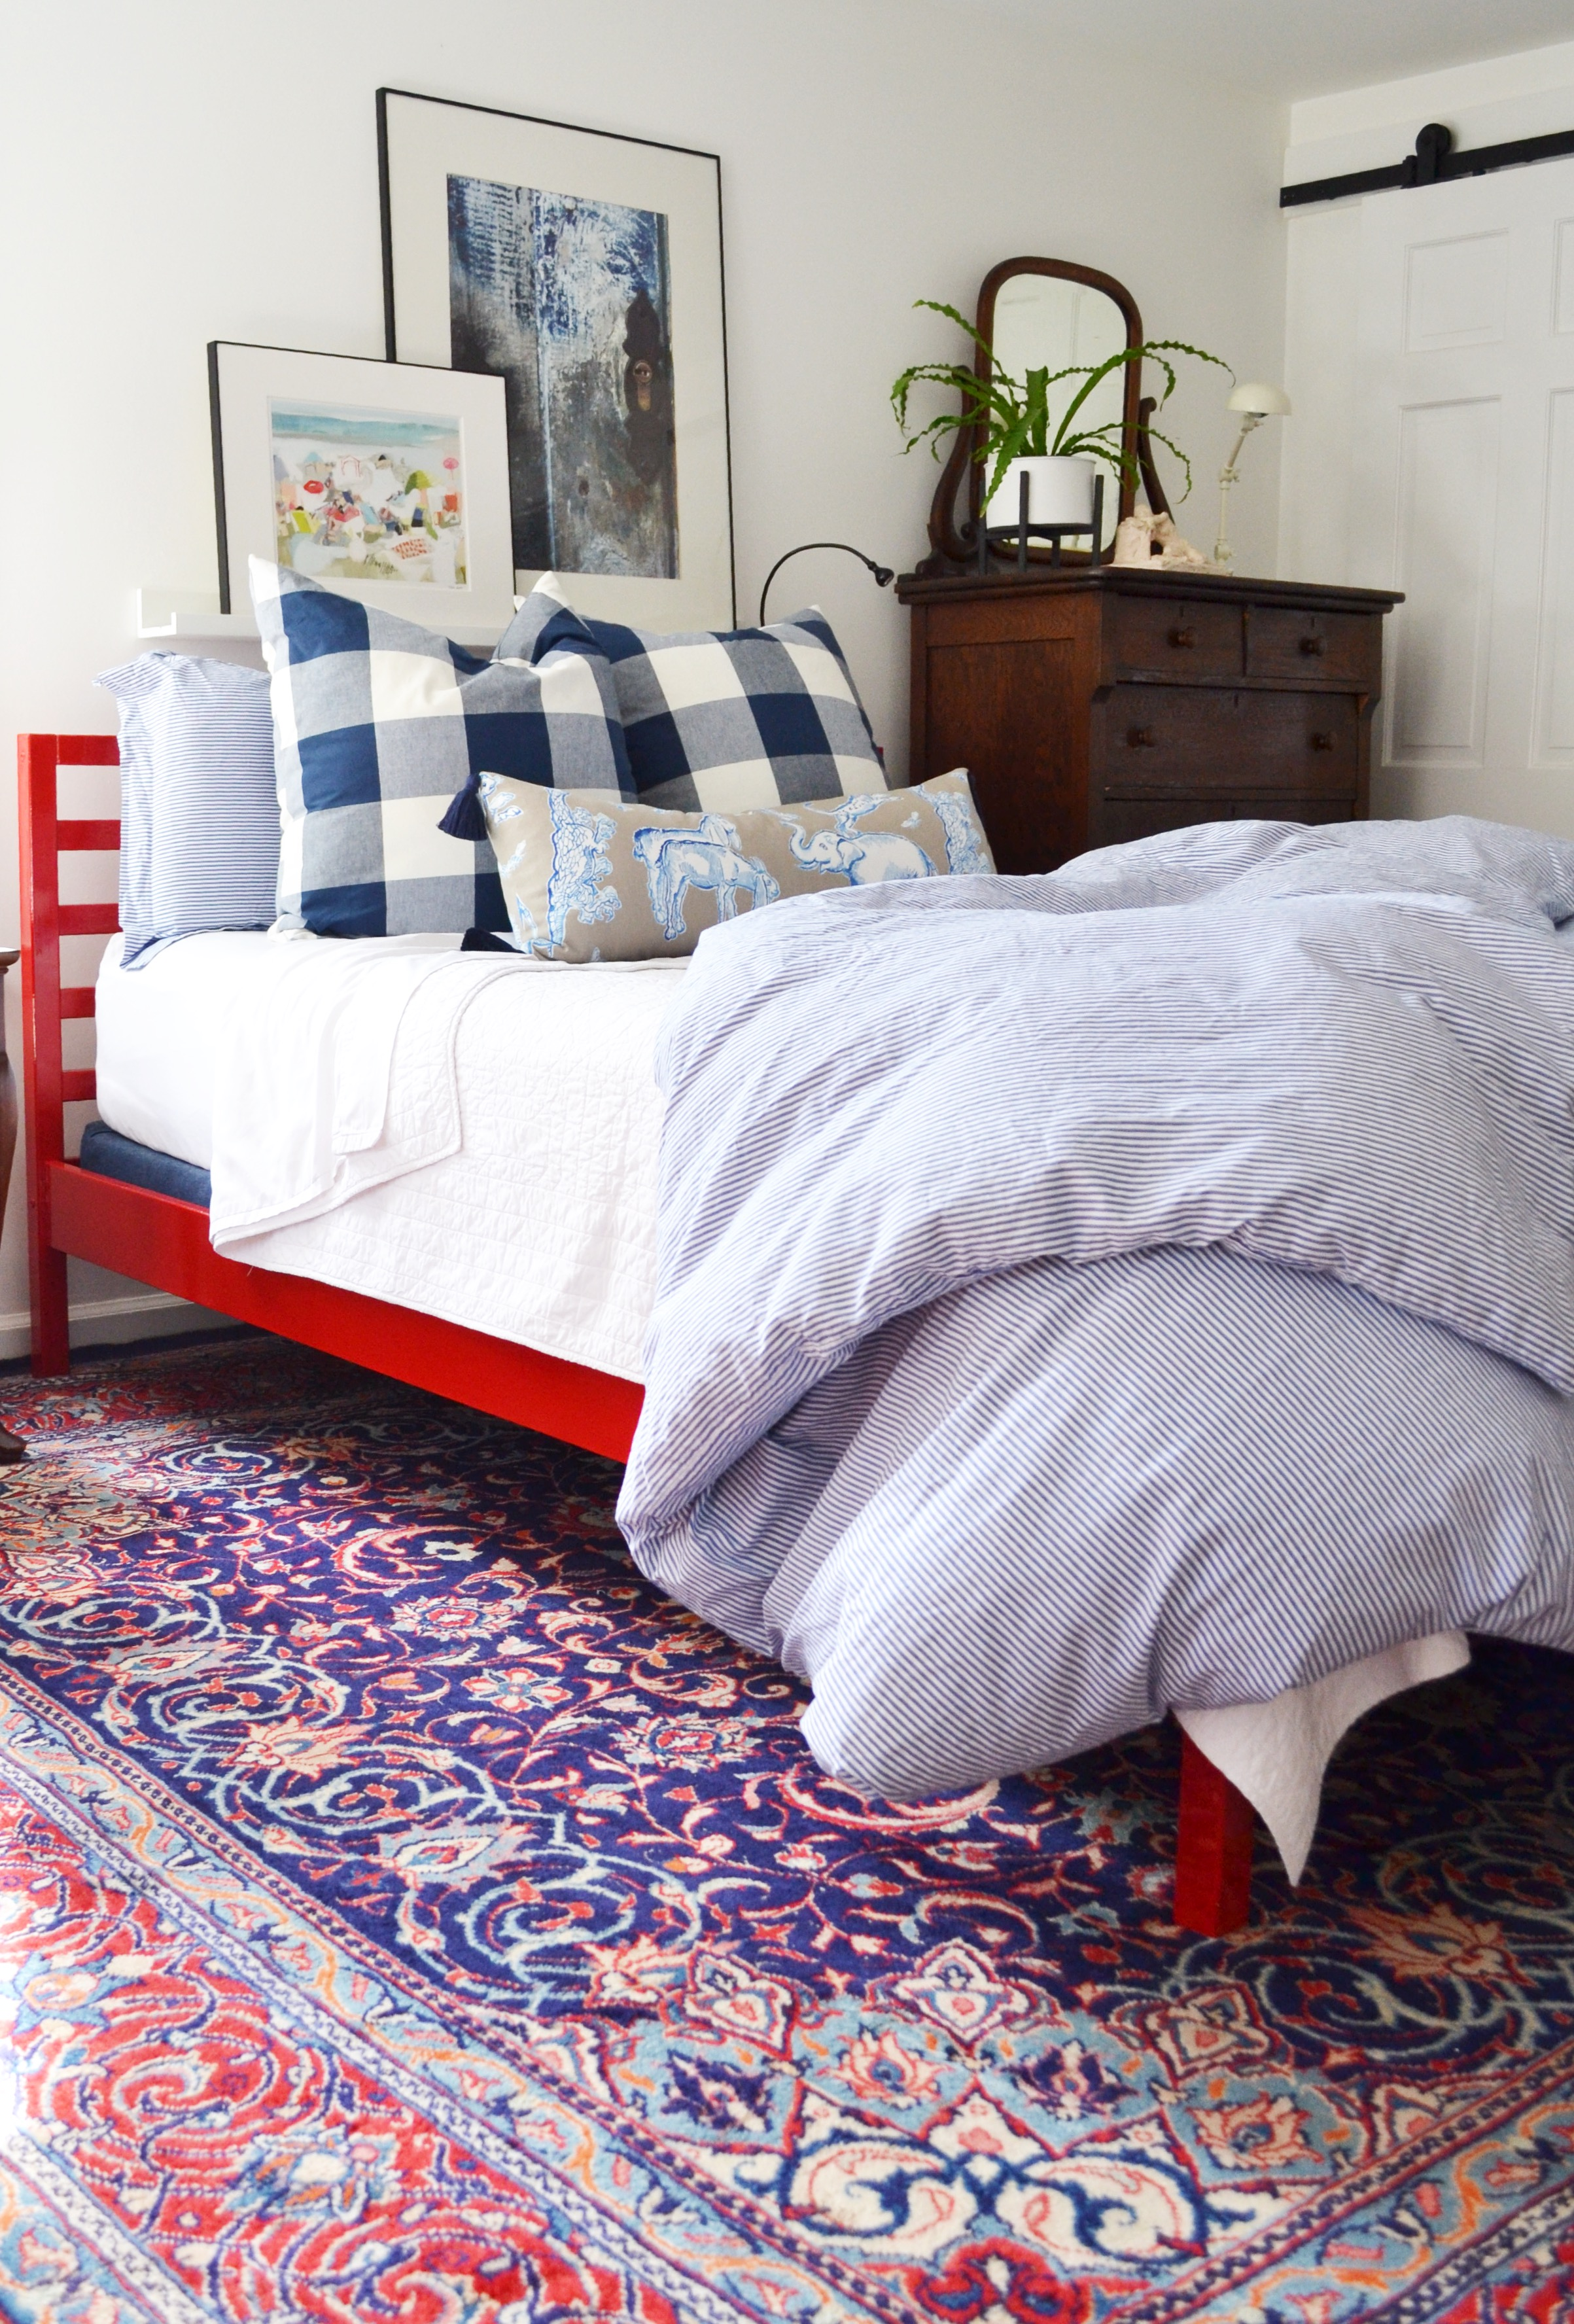 Today I Want To Share My Personal Tips For Making An Irresistibly Comfortable Bed Along With A Cheat Sheet Detailing All The Specifics You Need Have